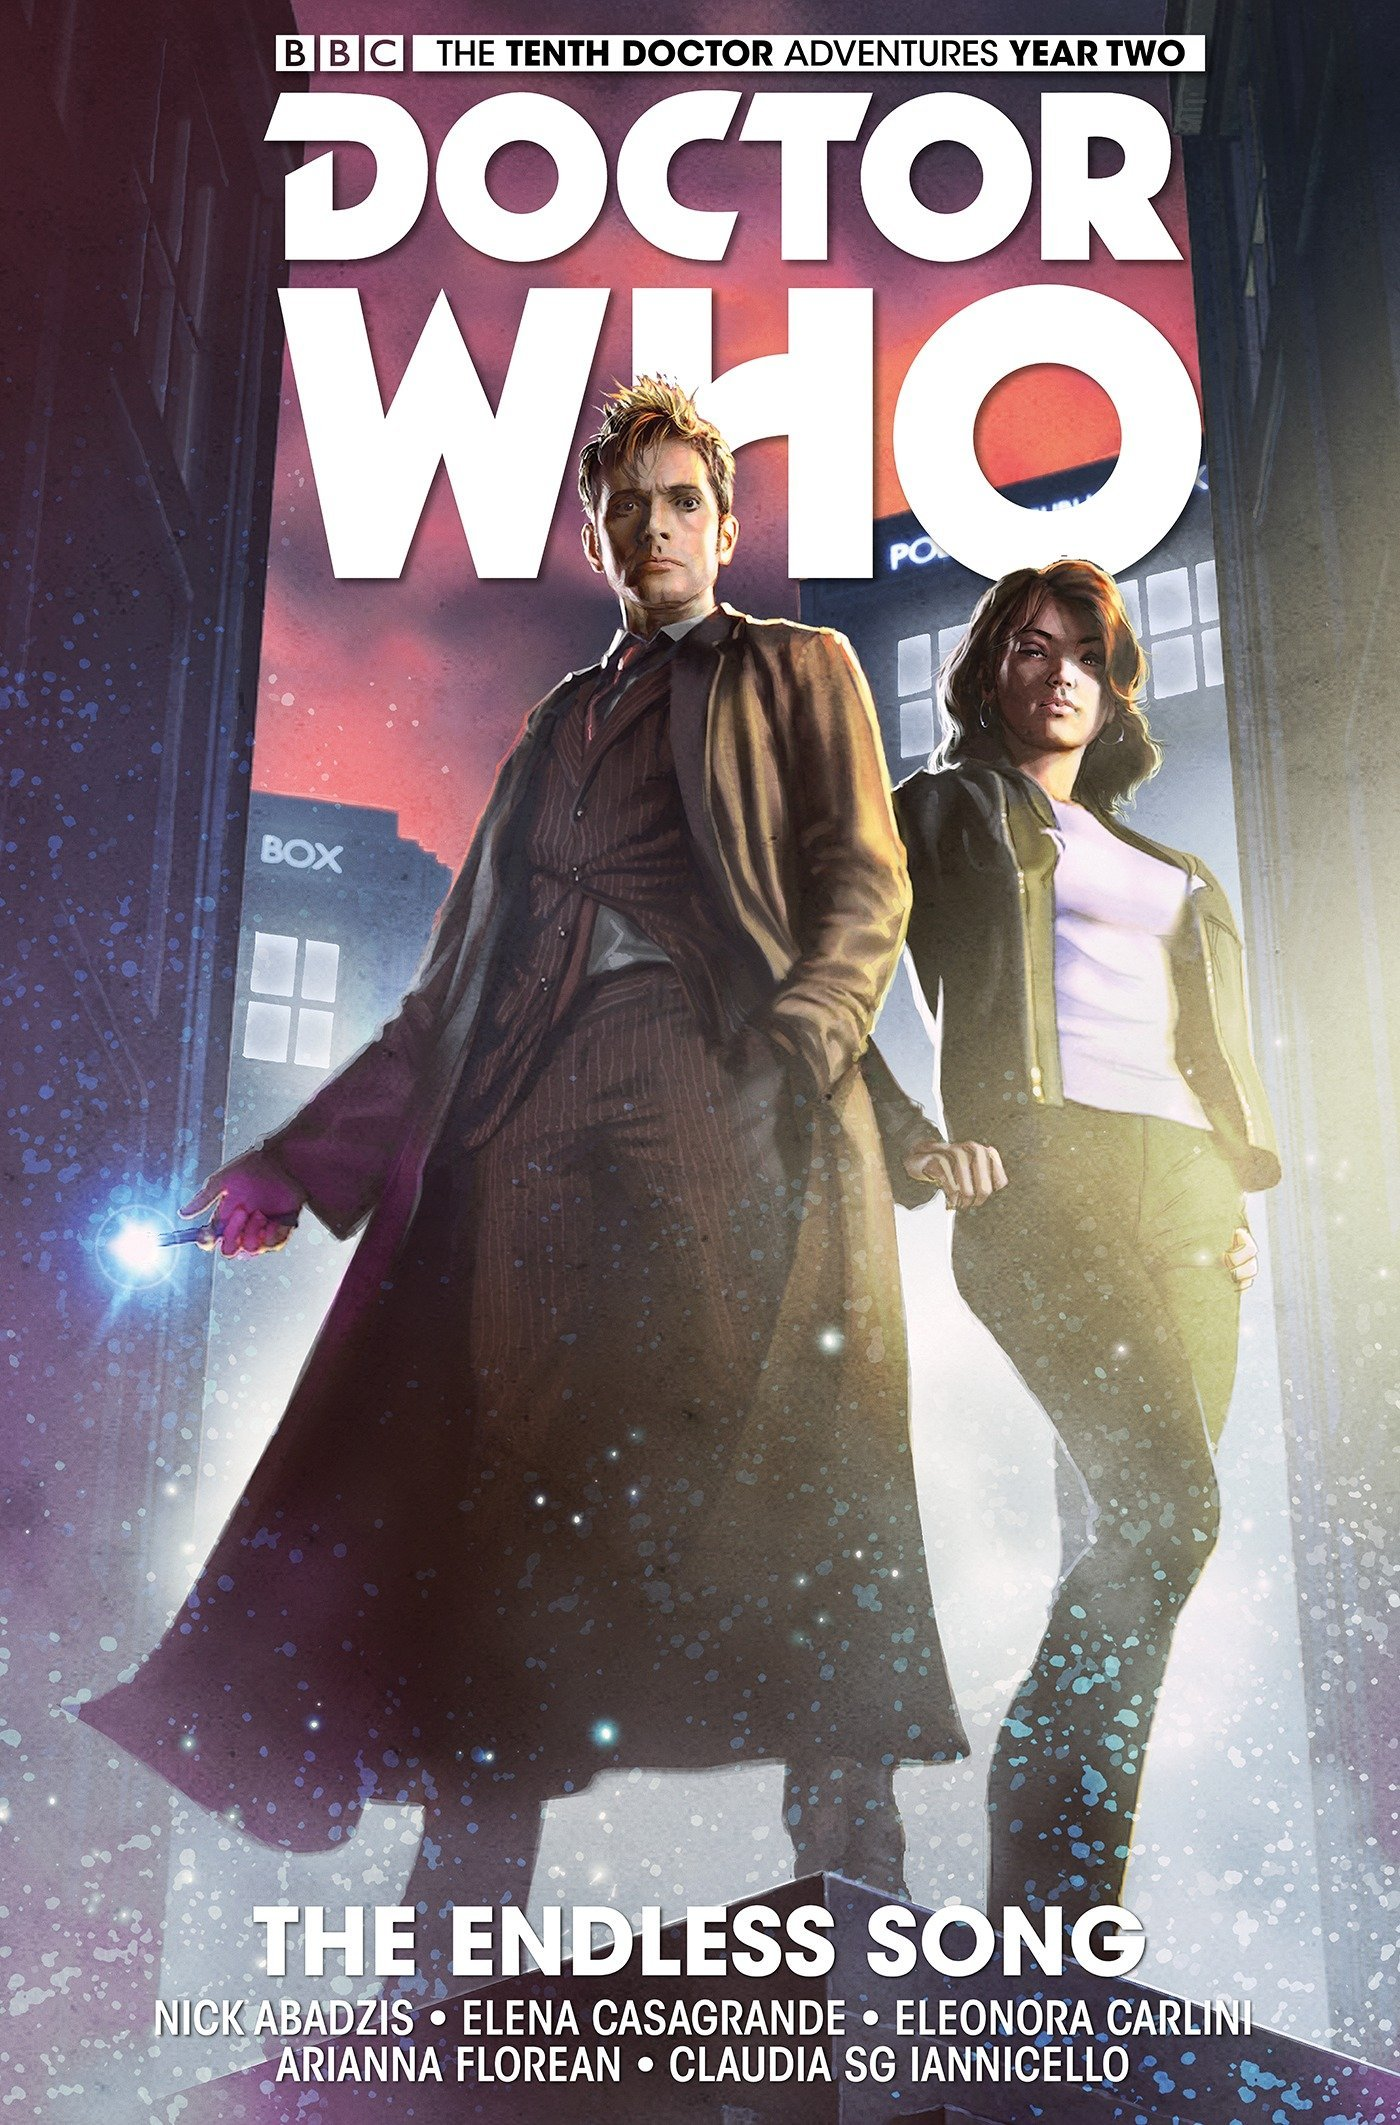 Download Doctor Who: The Tenth Doctor Volume 4 - The Endless Song pdf